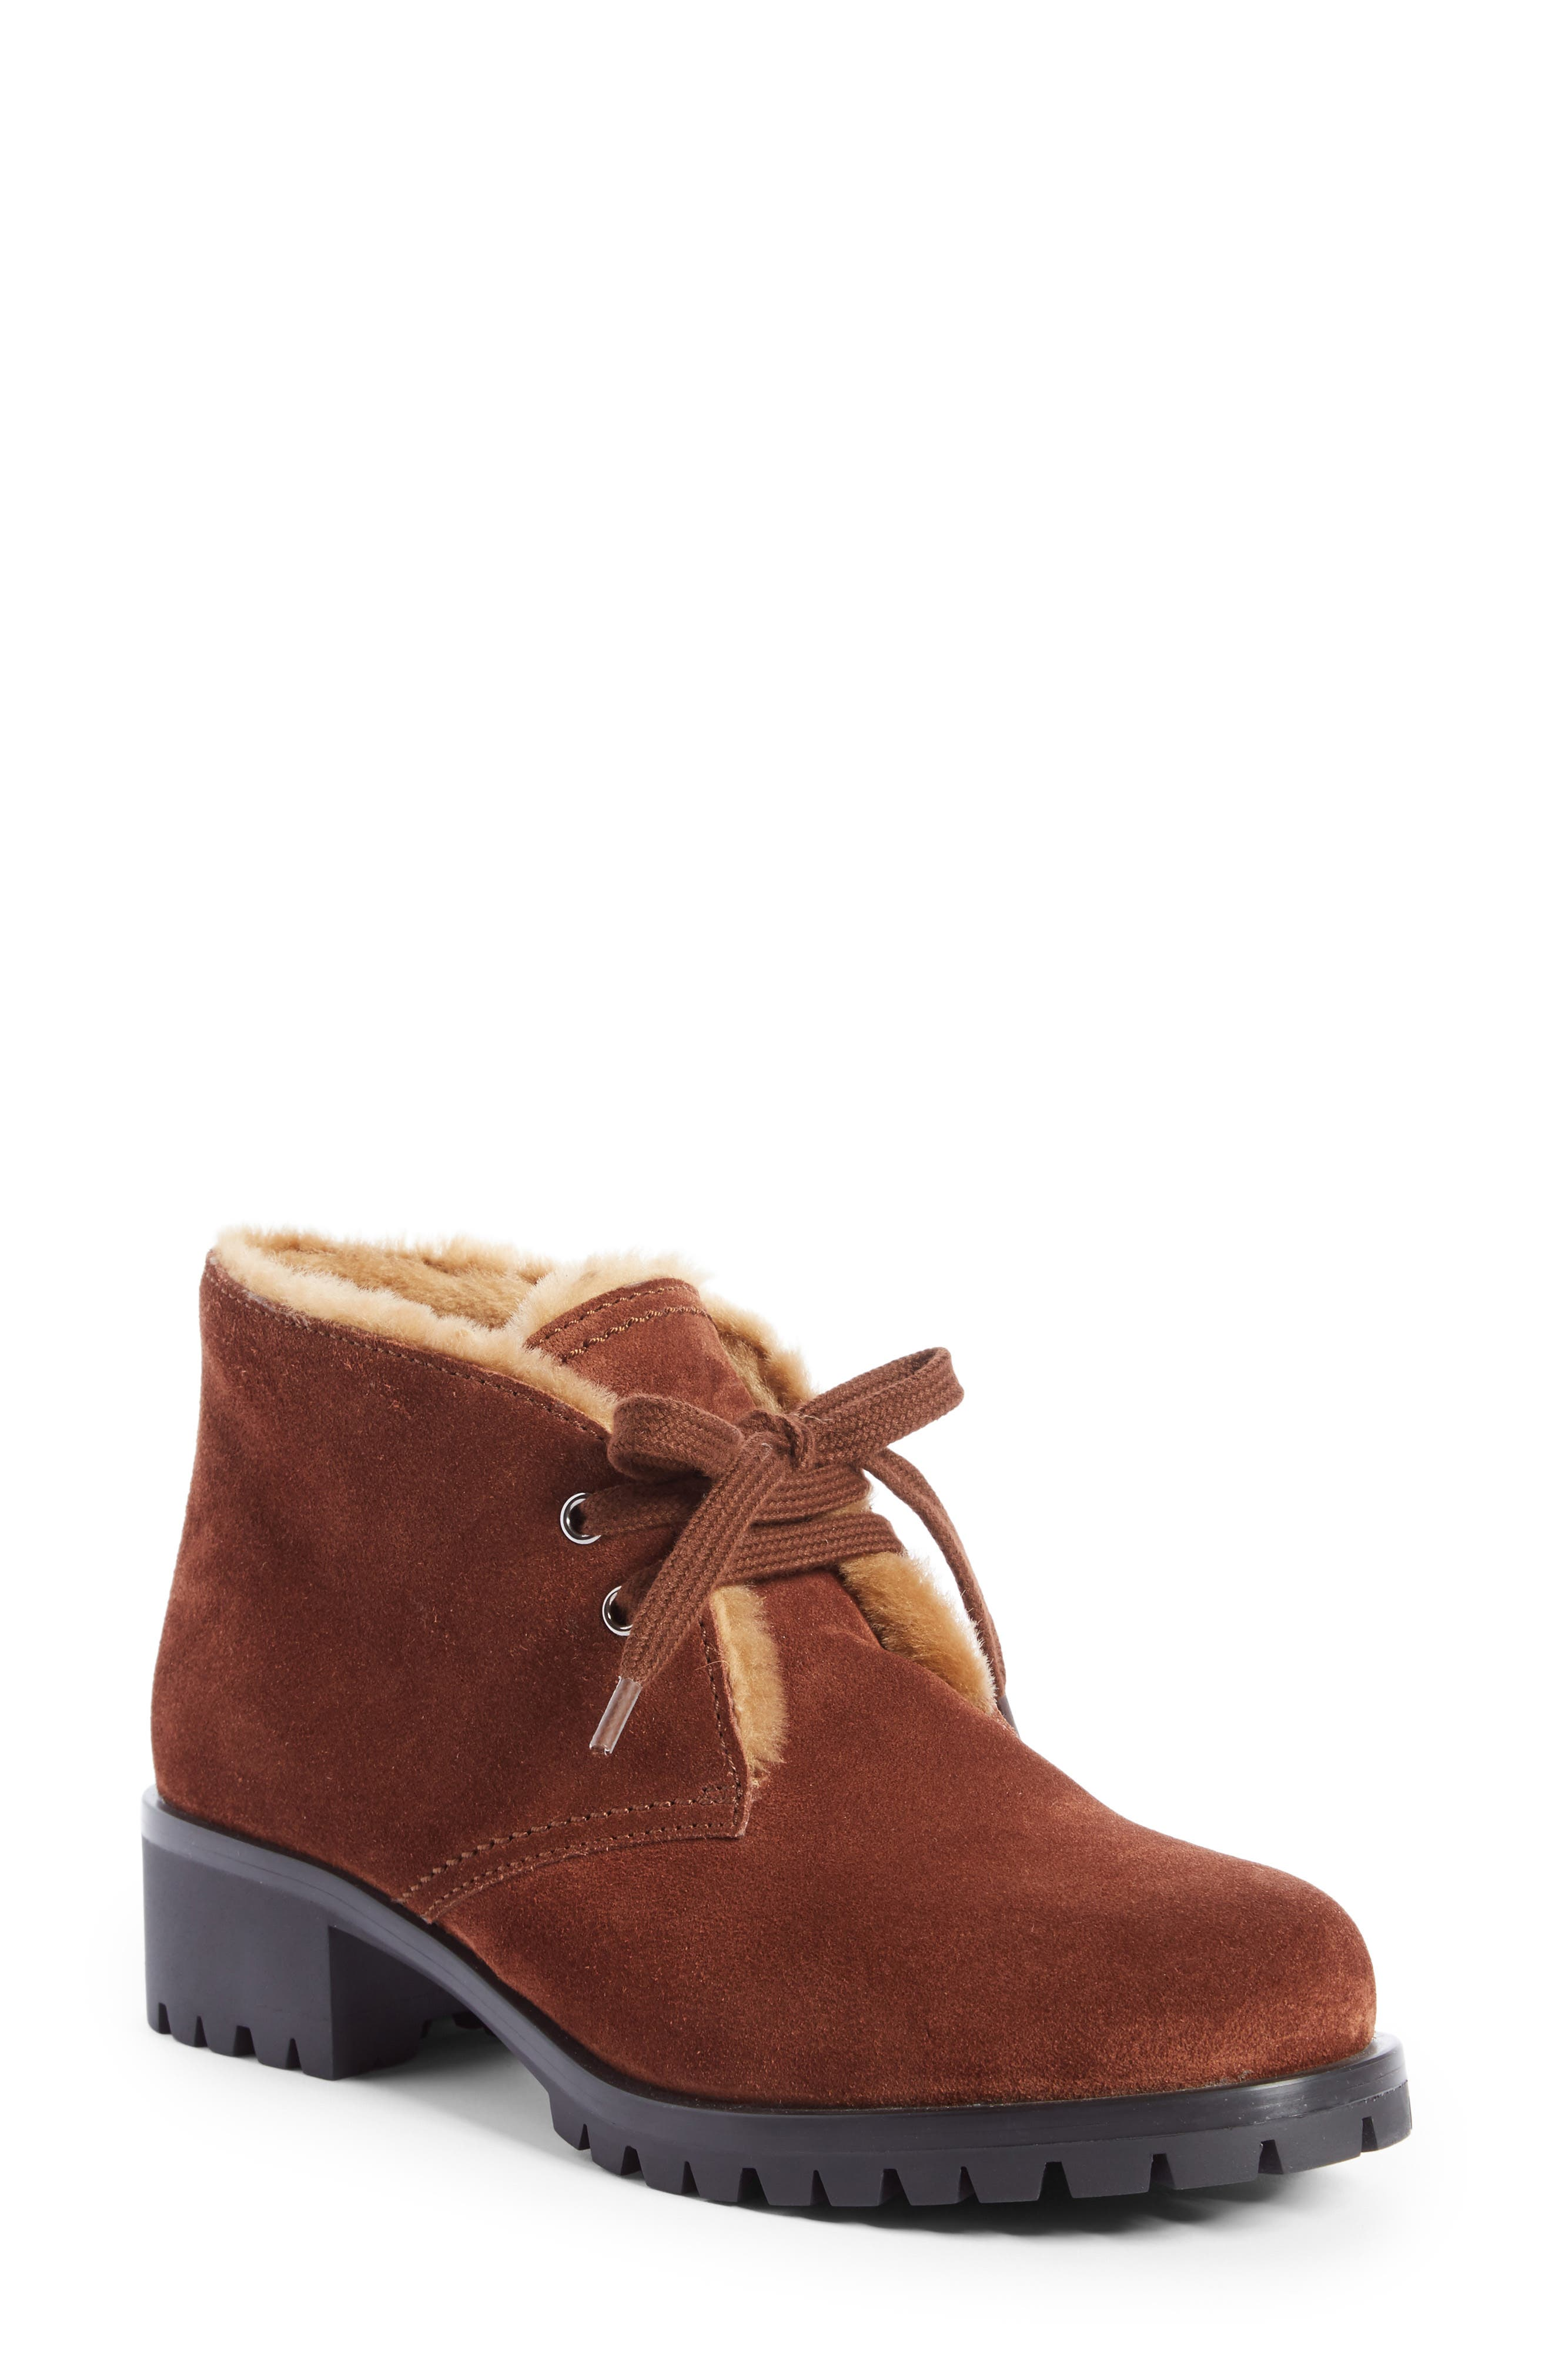 Alternate Image 1 Selected - Prada Genuine Shearling Lined Bootie (Women)